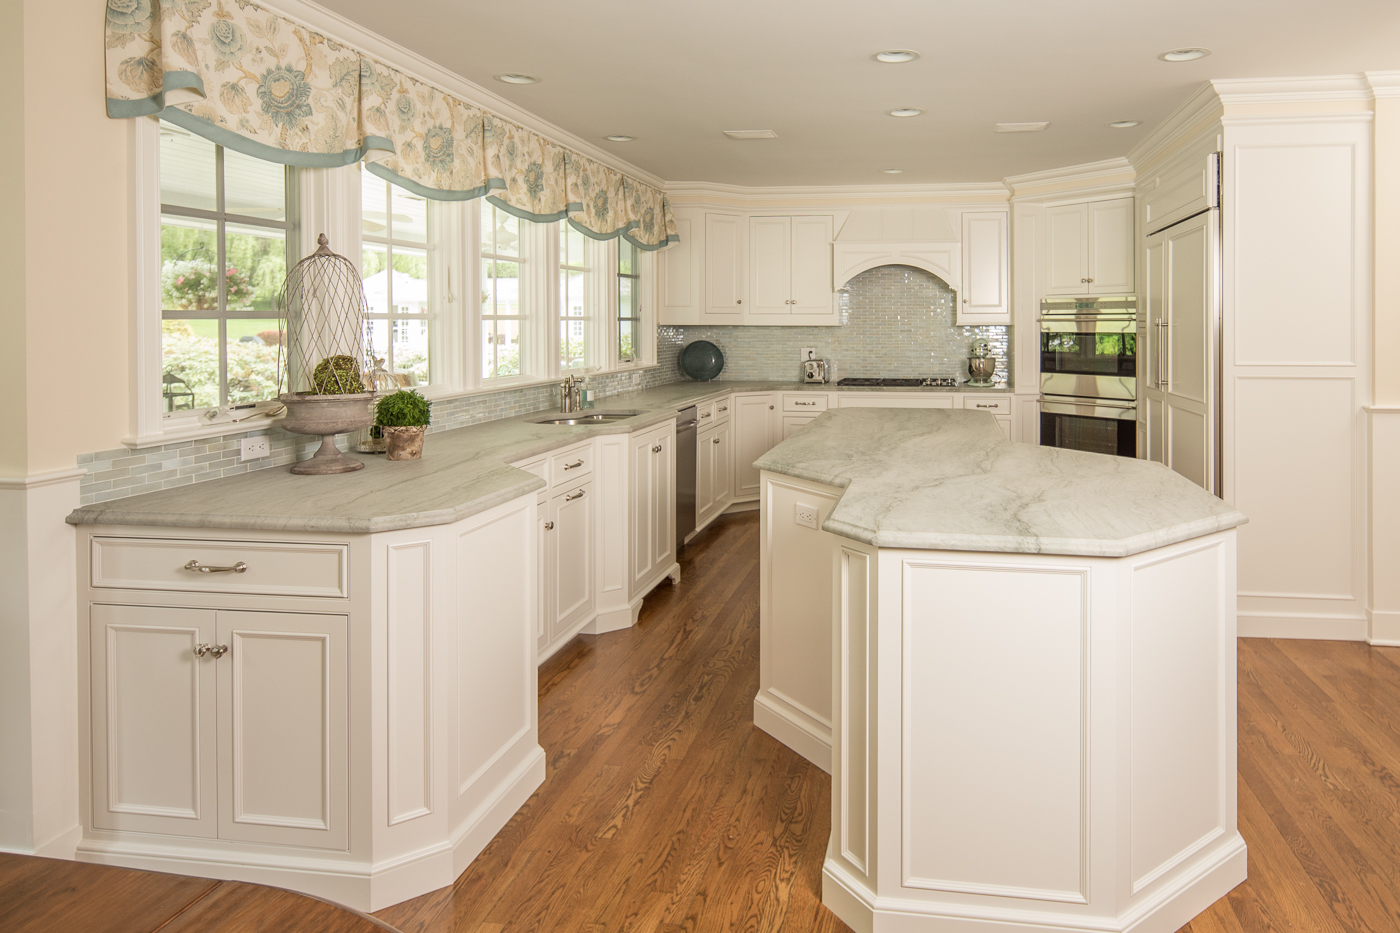 Kitchen Design Ct Classy Ackley Cabinet Llc Inspiration Design